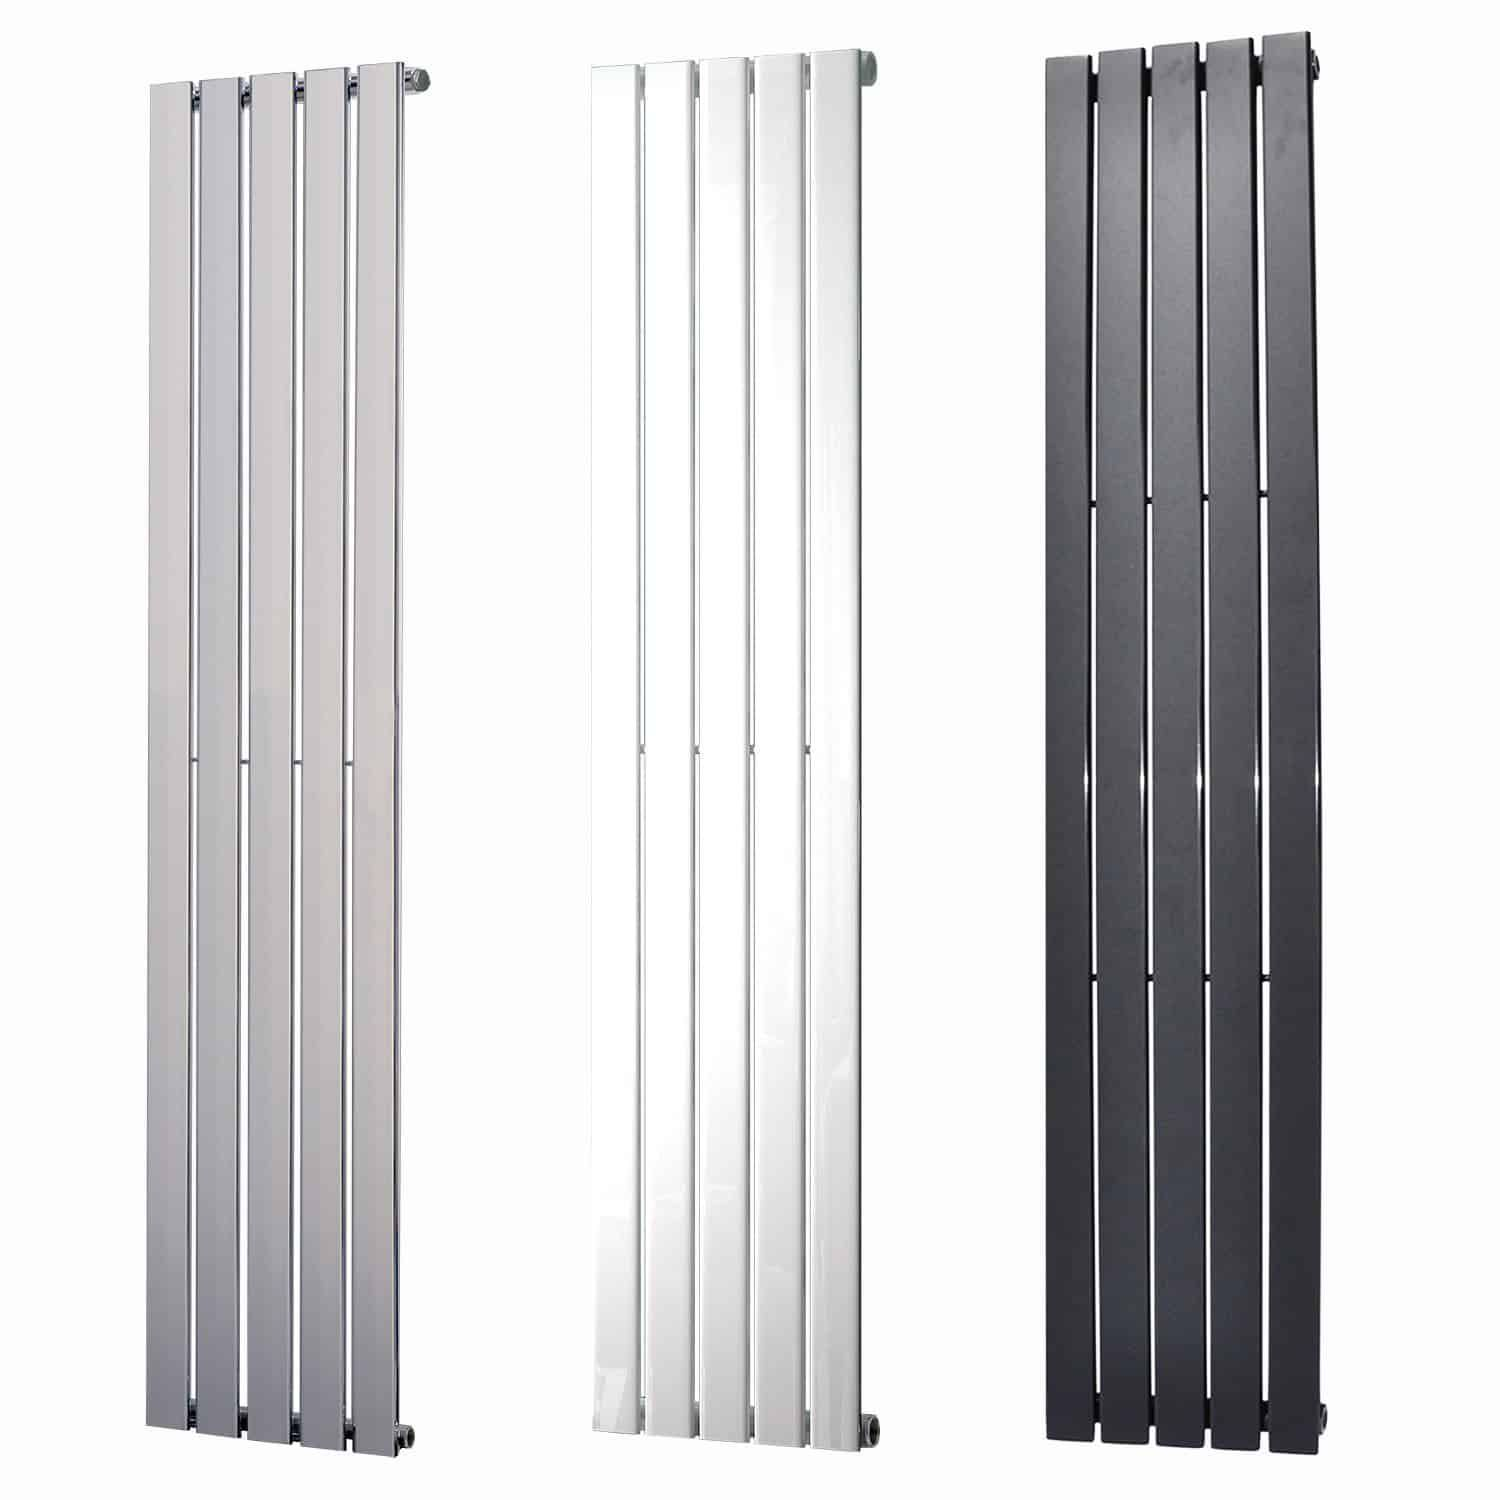 Navi vertical decorative wall mounted radiator for white in